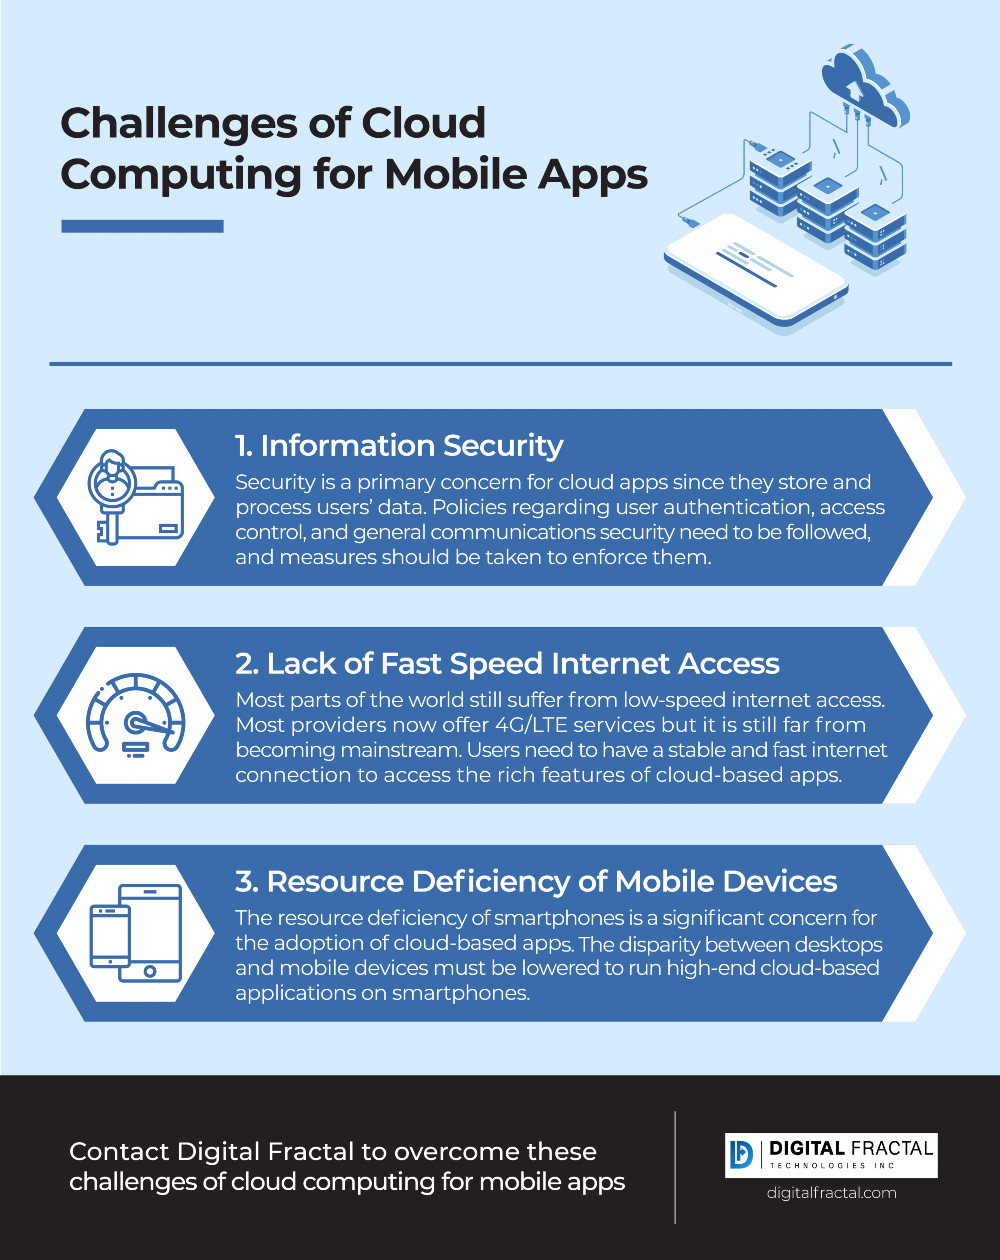 Challenges of Cloud Computing for Mobile Apps